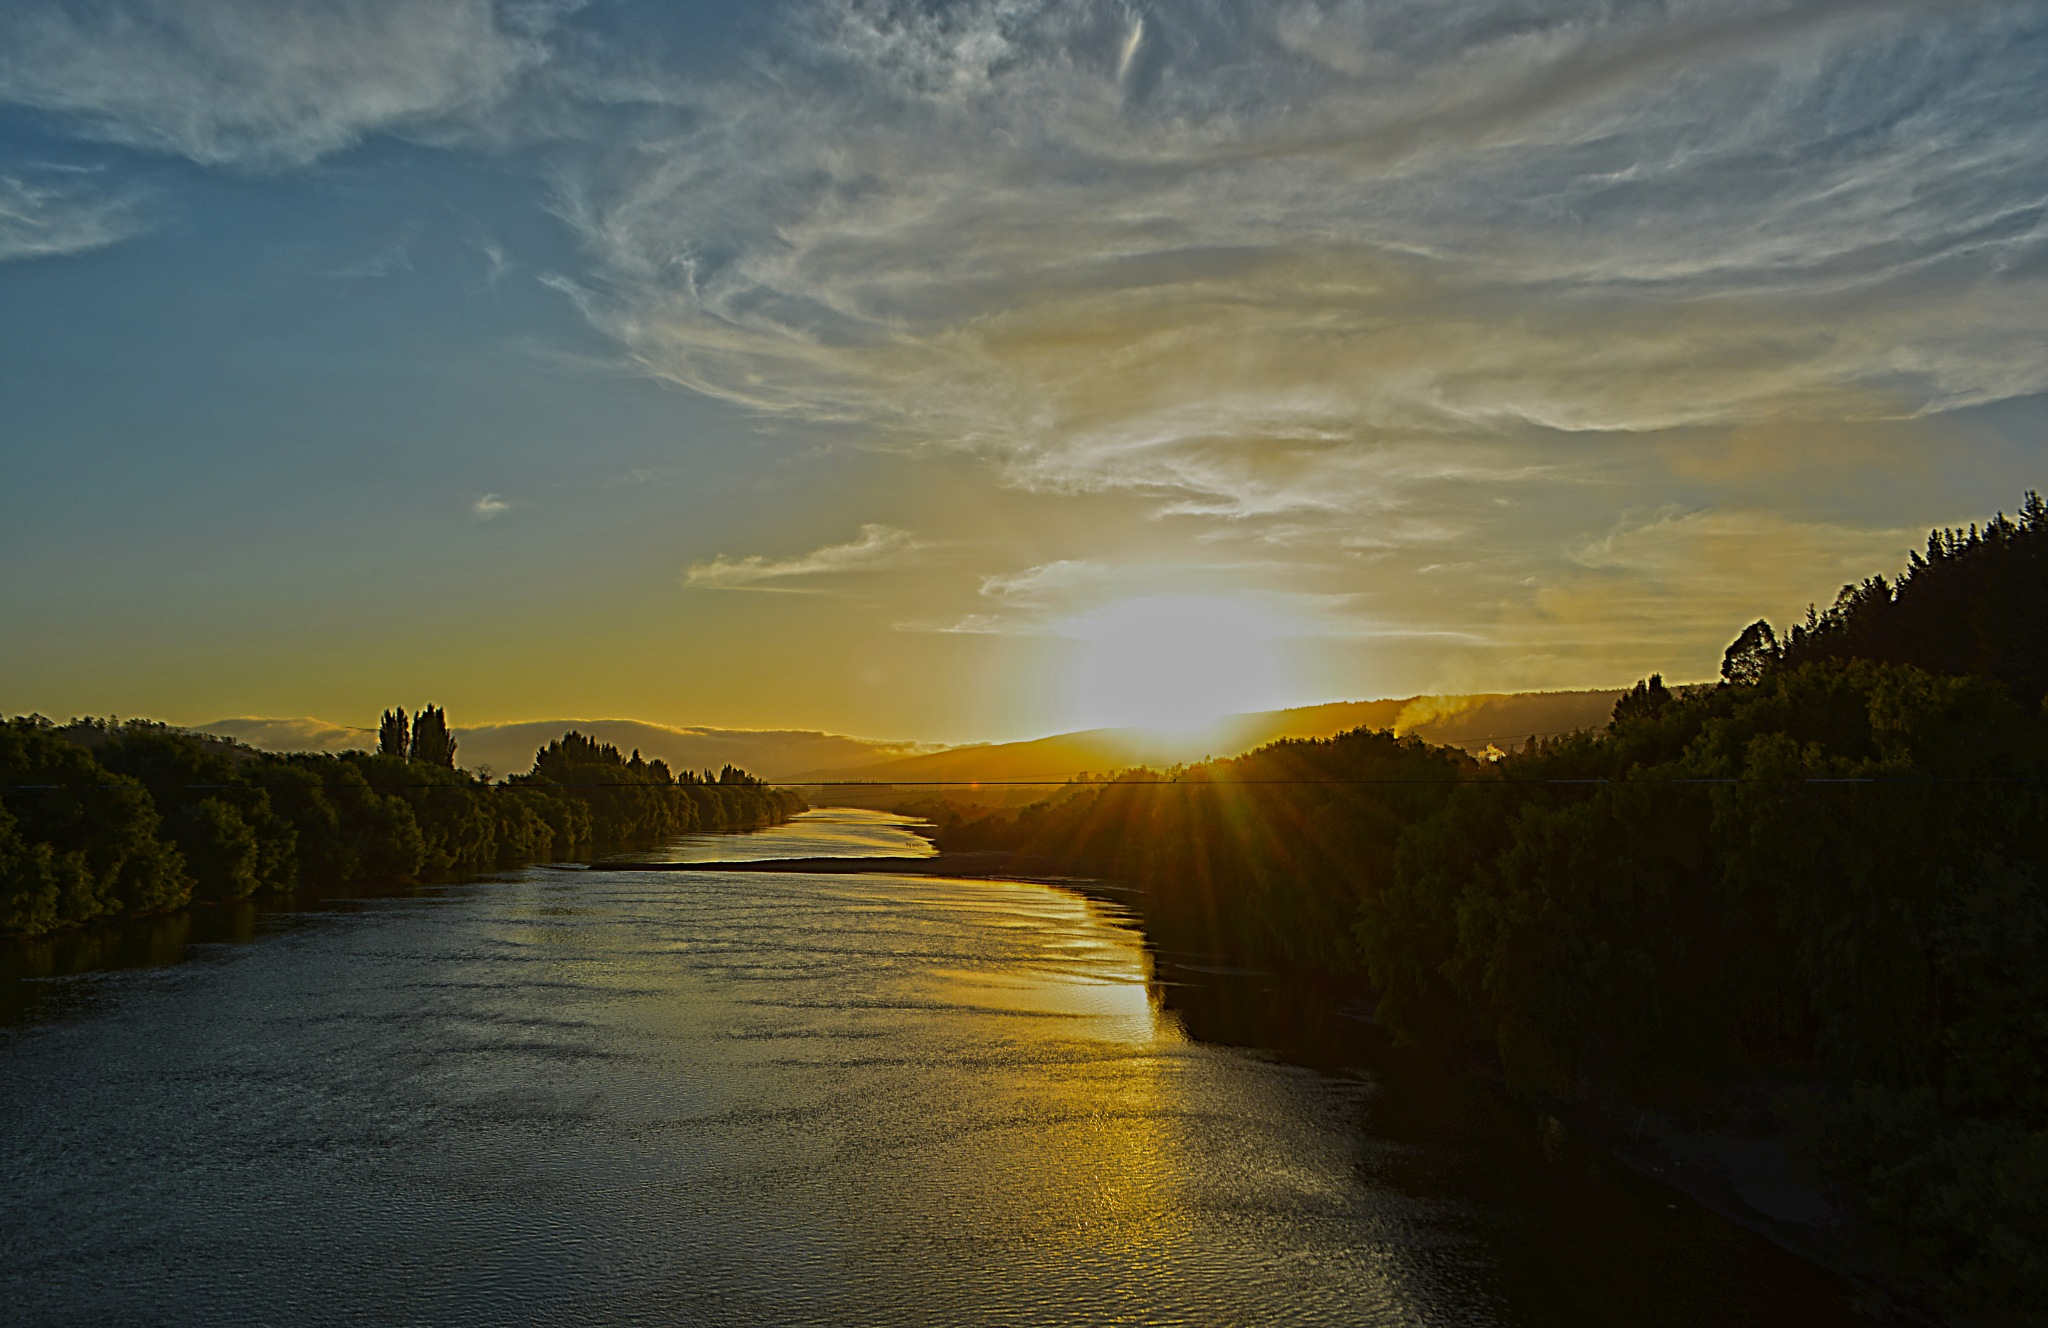 Sunset on the River by CarlosVenegas.